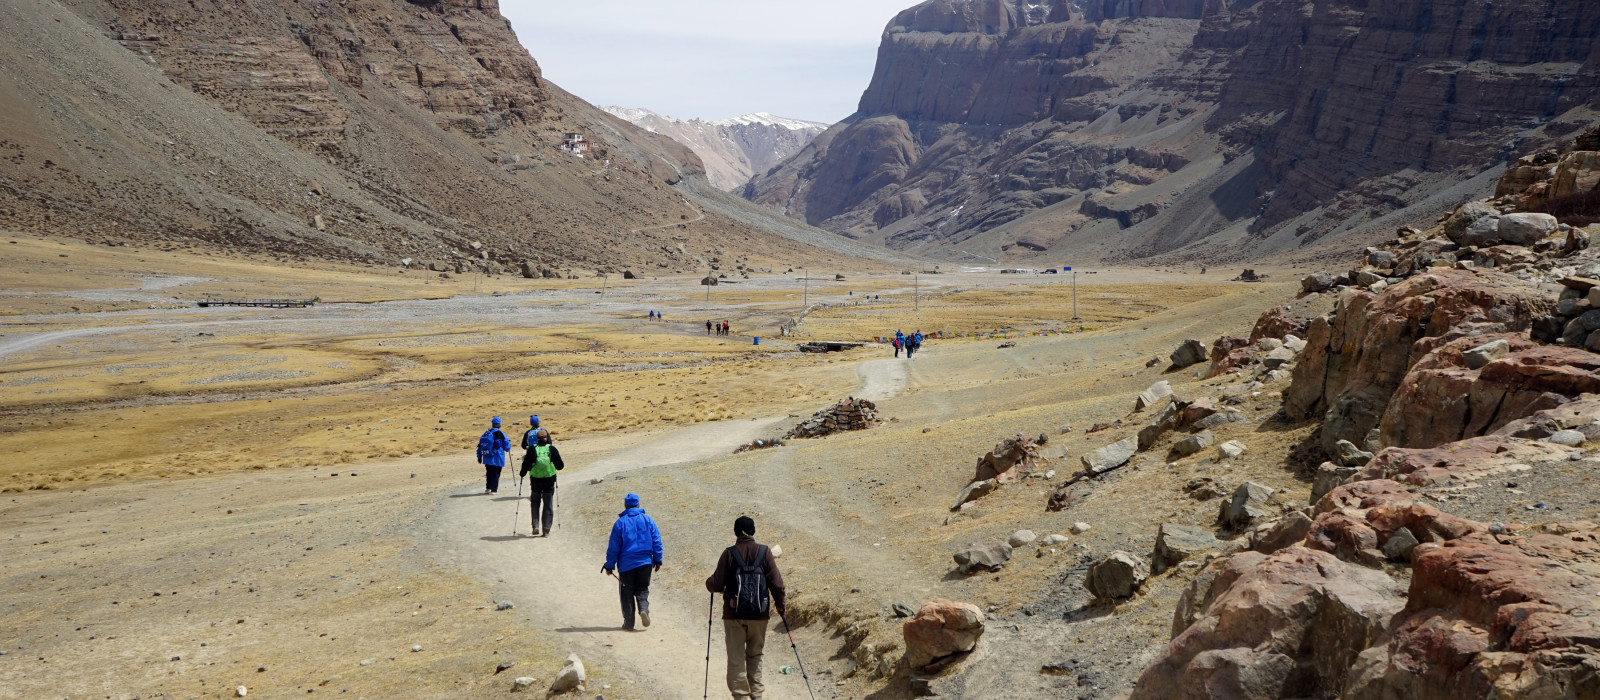 Kailash mount and backpackers in Tibet, Asia